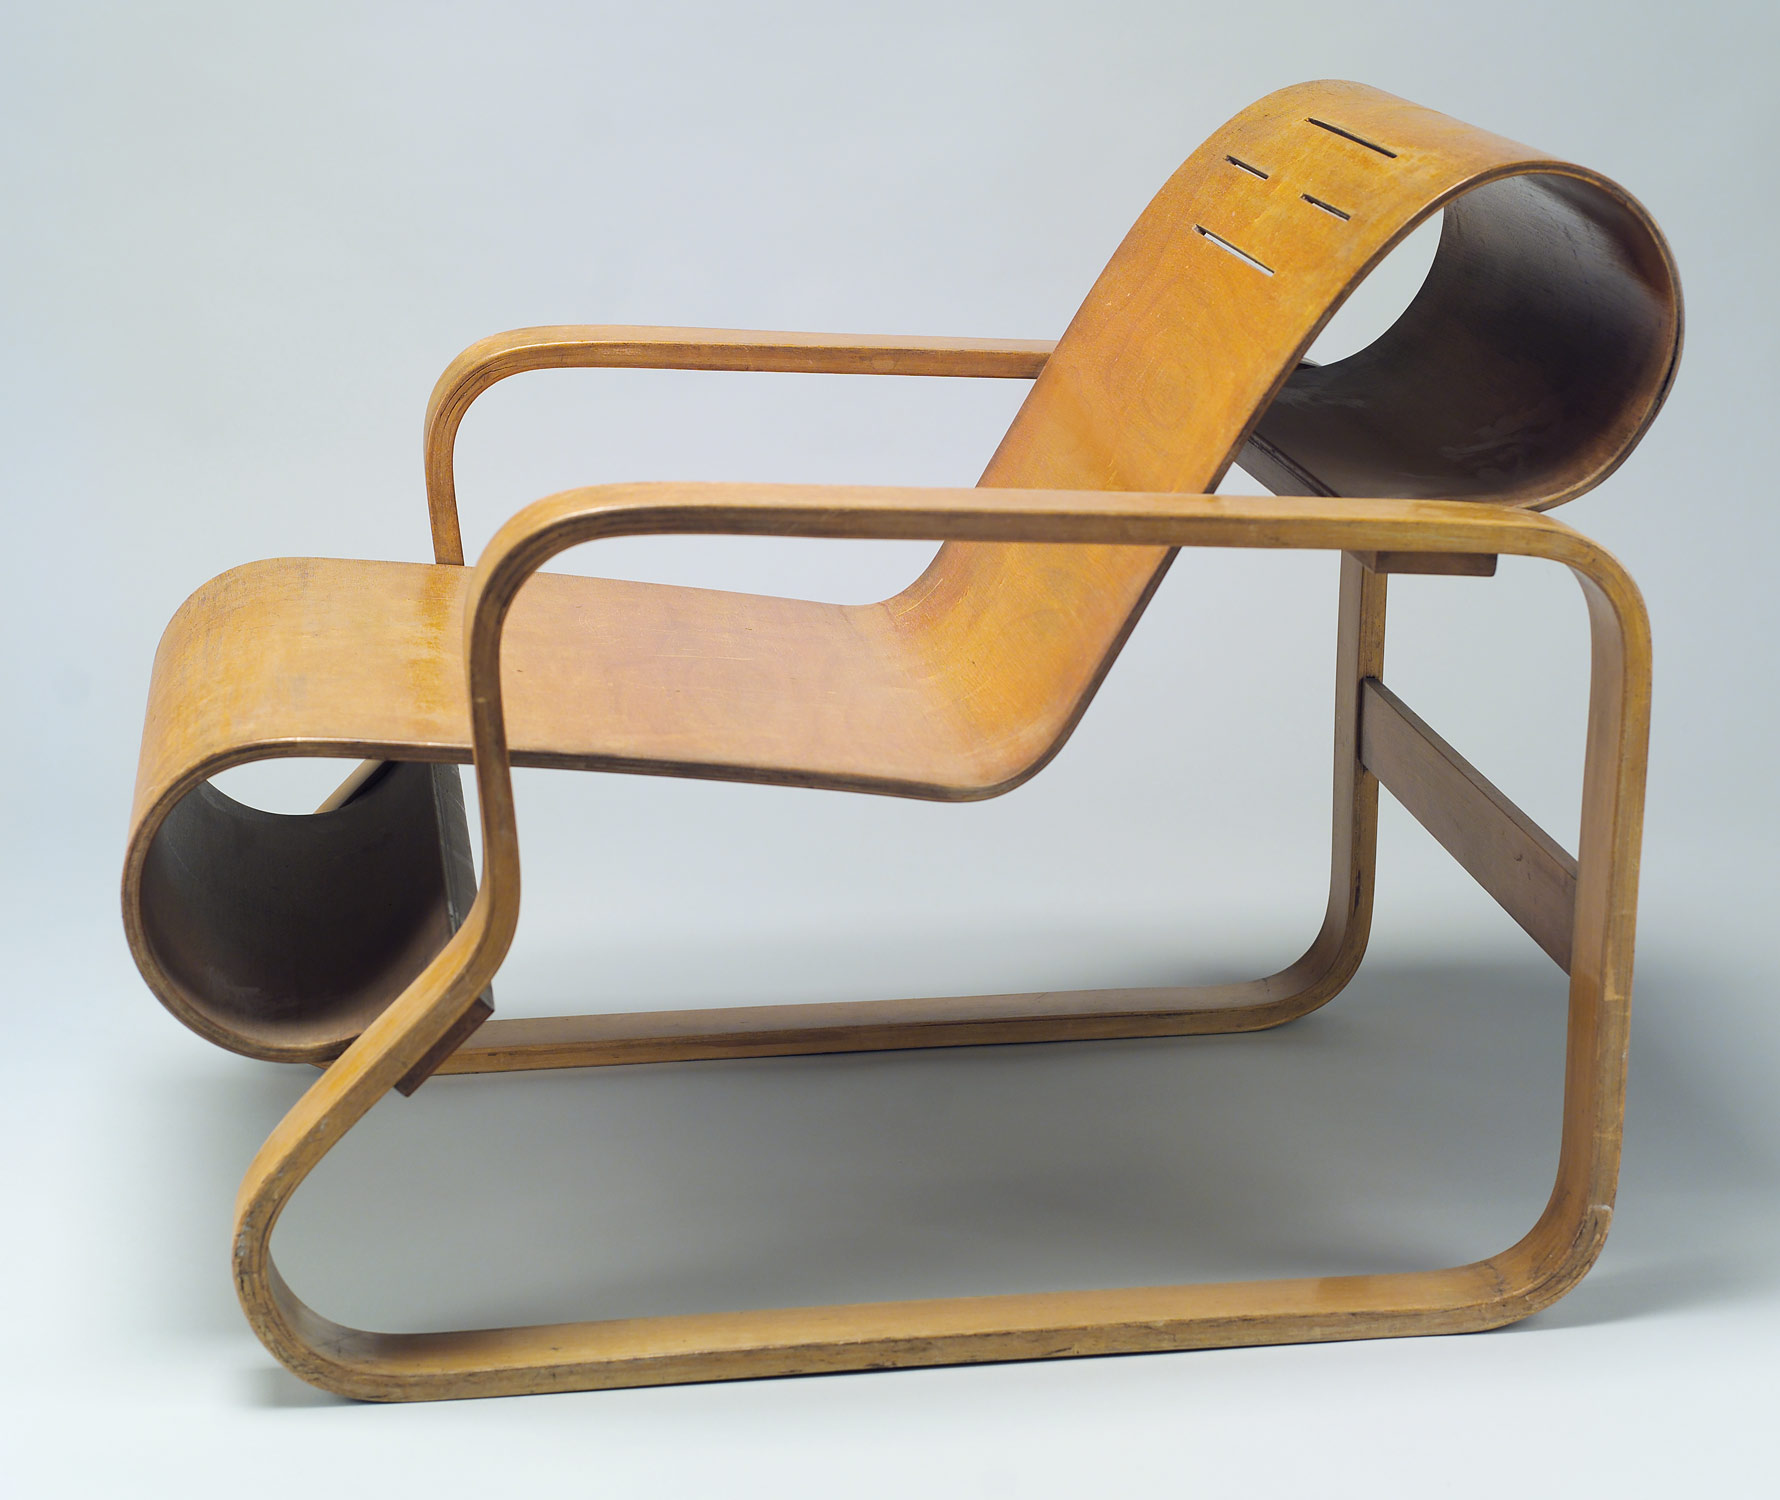 Model No. 41 lounge chair